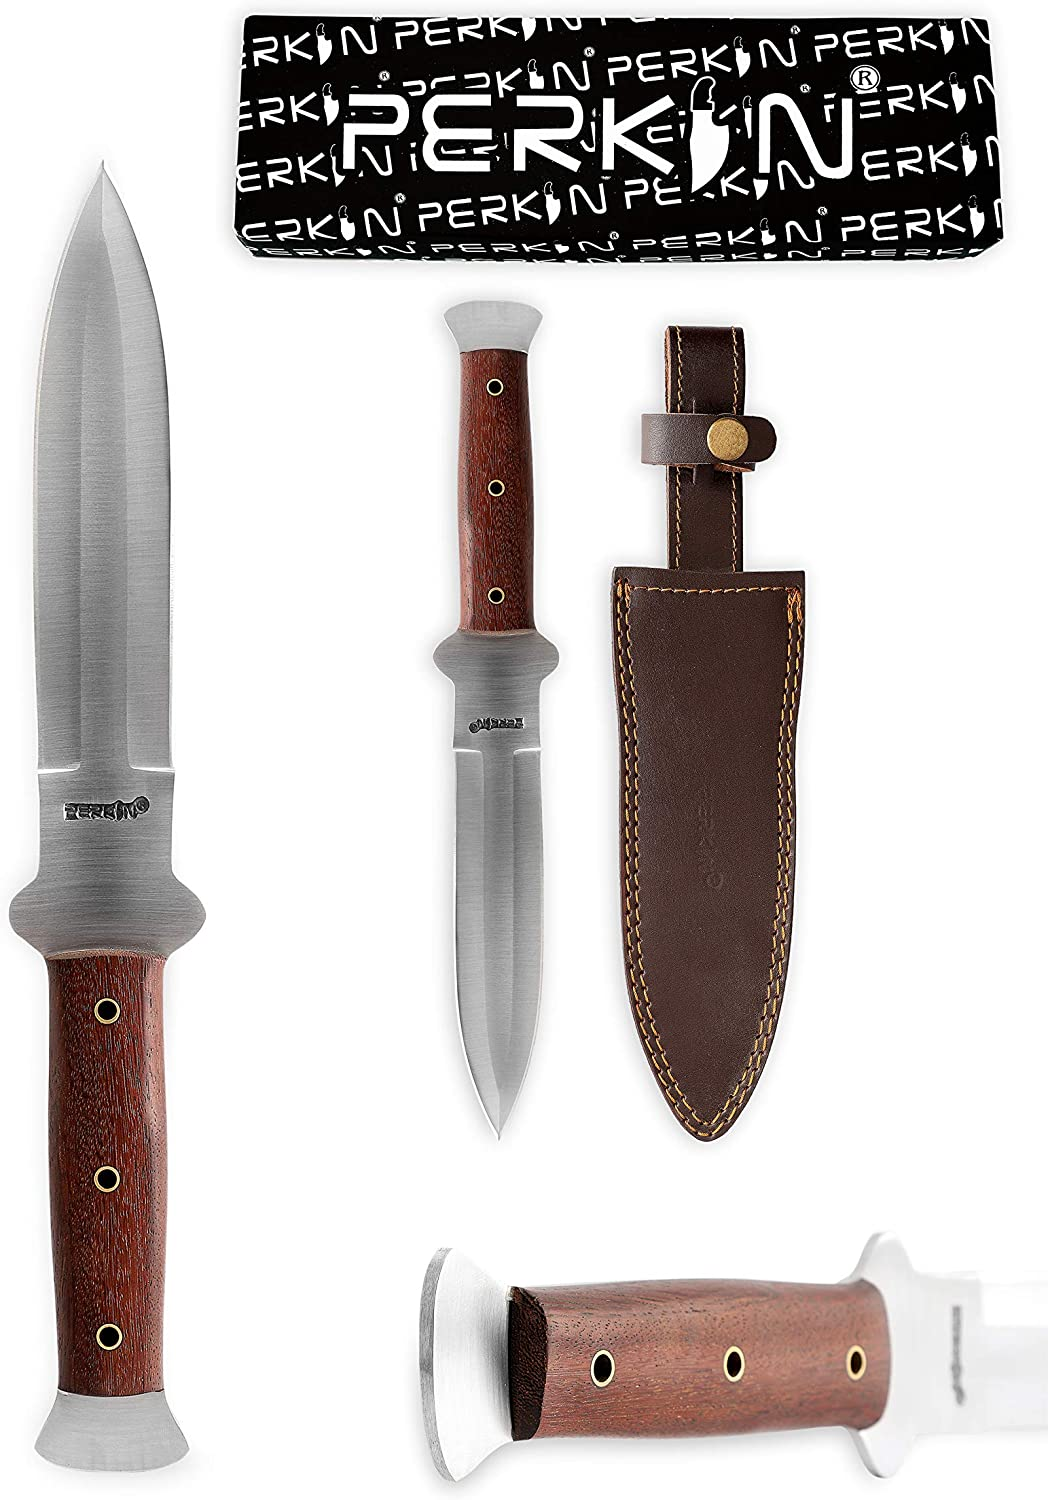 Perkin - All items free shipping Handmade Hunting Knife with Fixed unisex S Blade